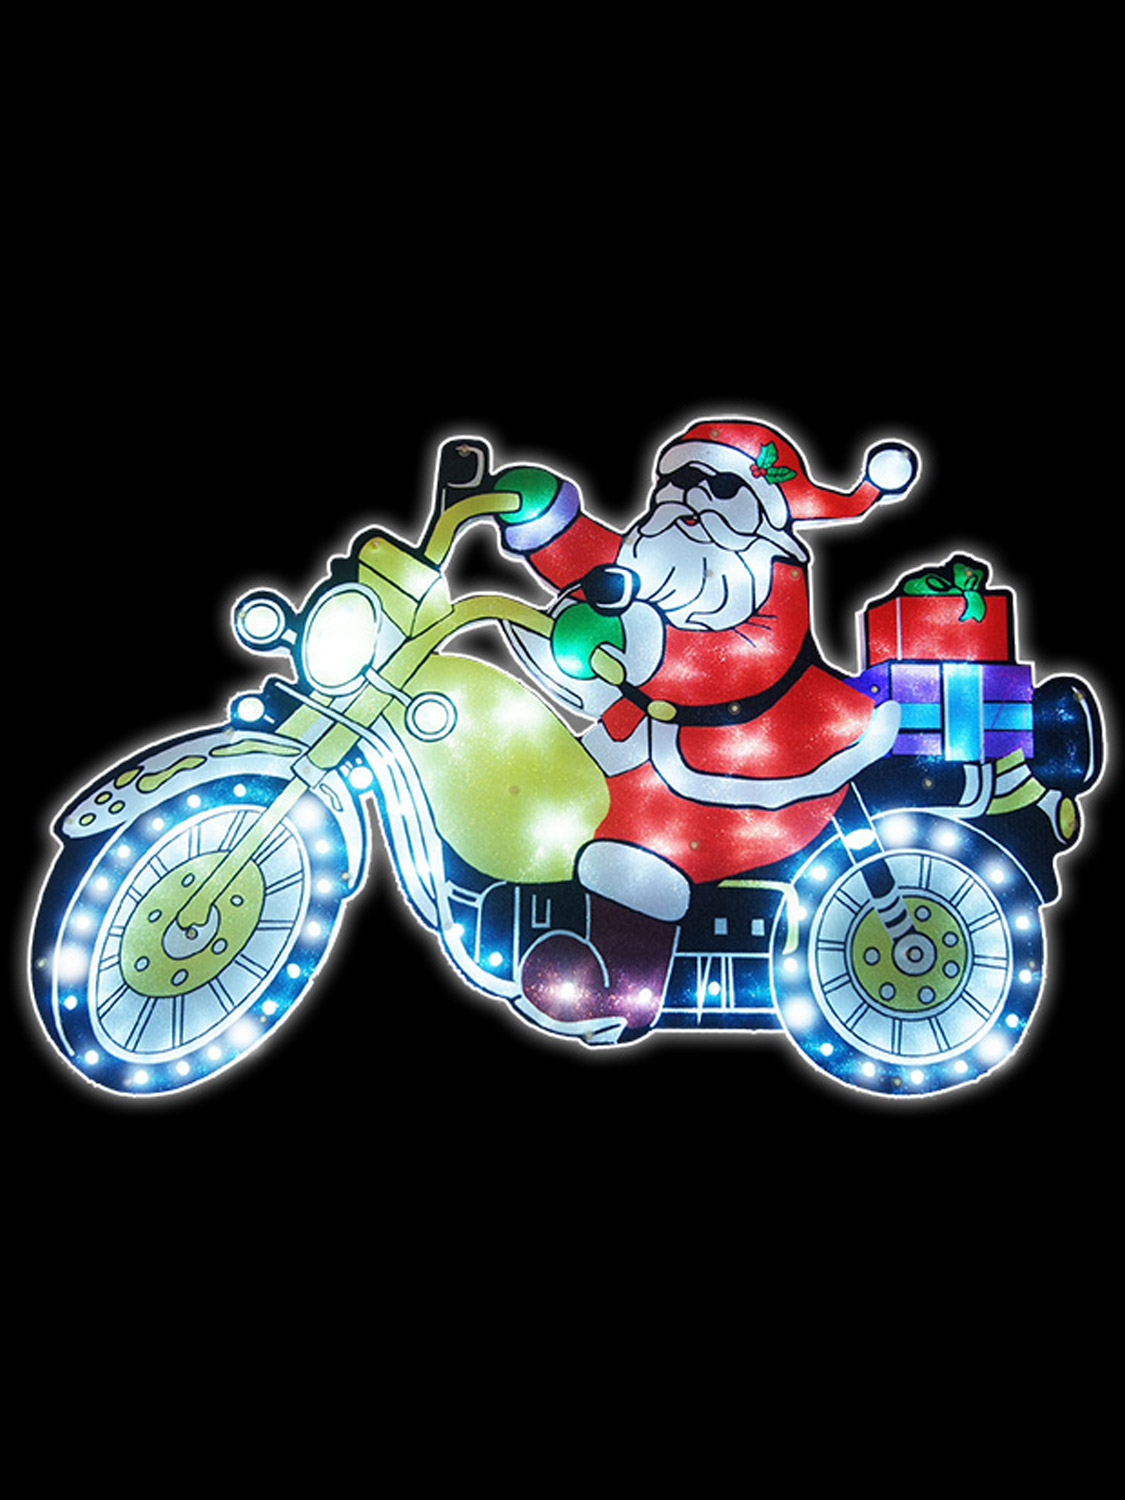 Light Up Christmas Moving Silhouette Helicopter Motorbike